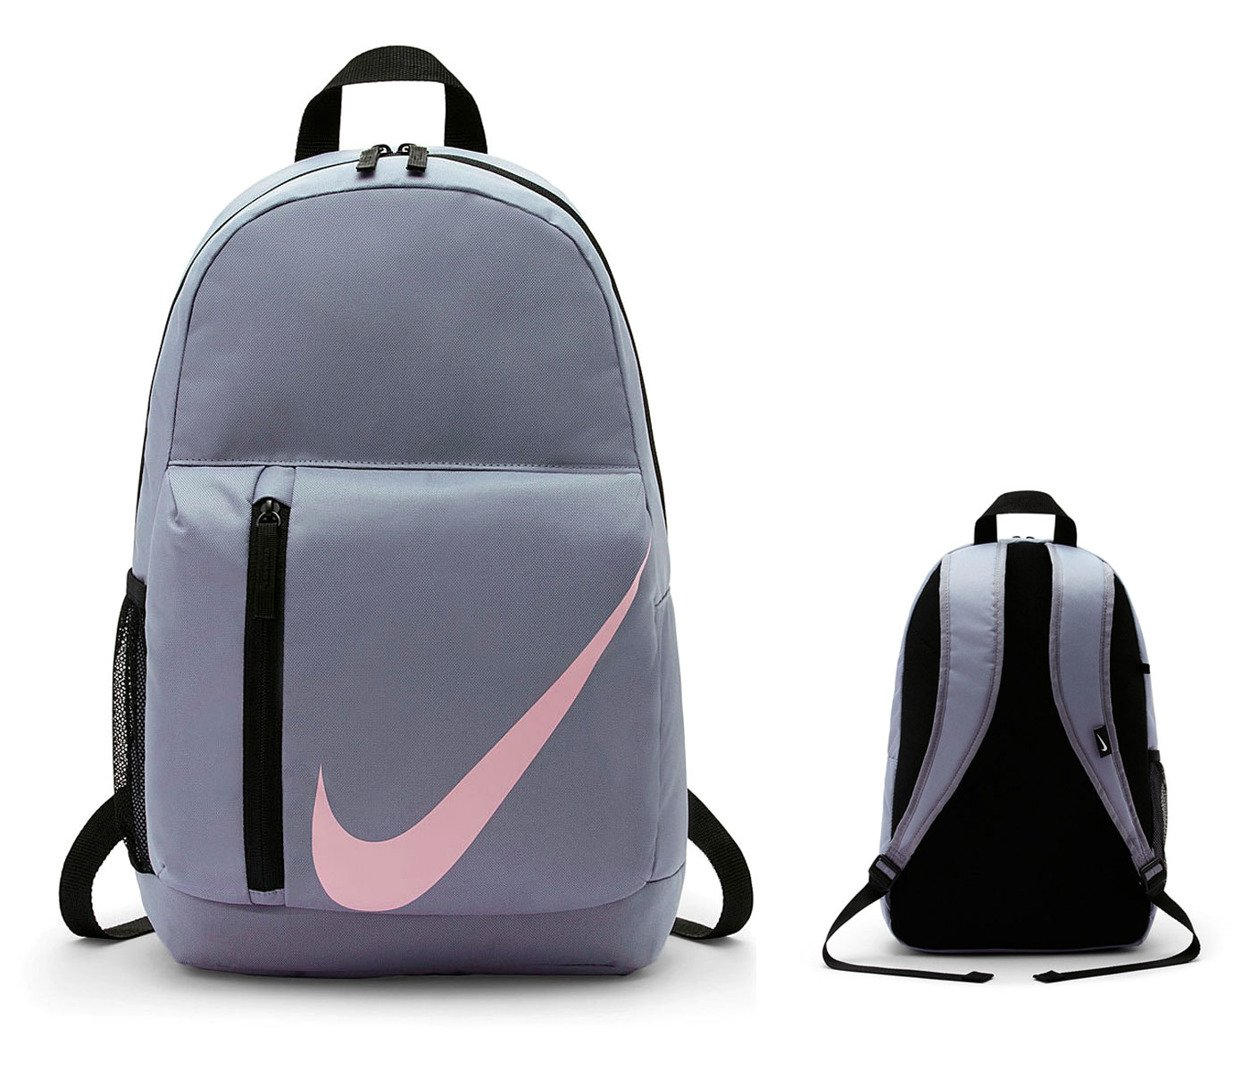 be239e59cdb27 ... Plecak Nike Elemental Backpack BA5405-445 ...